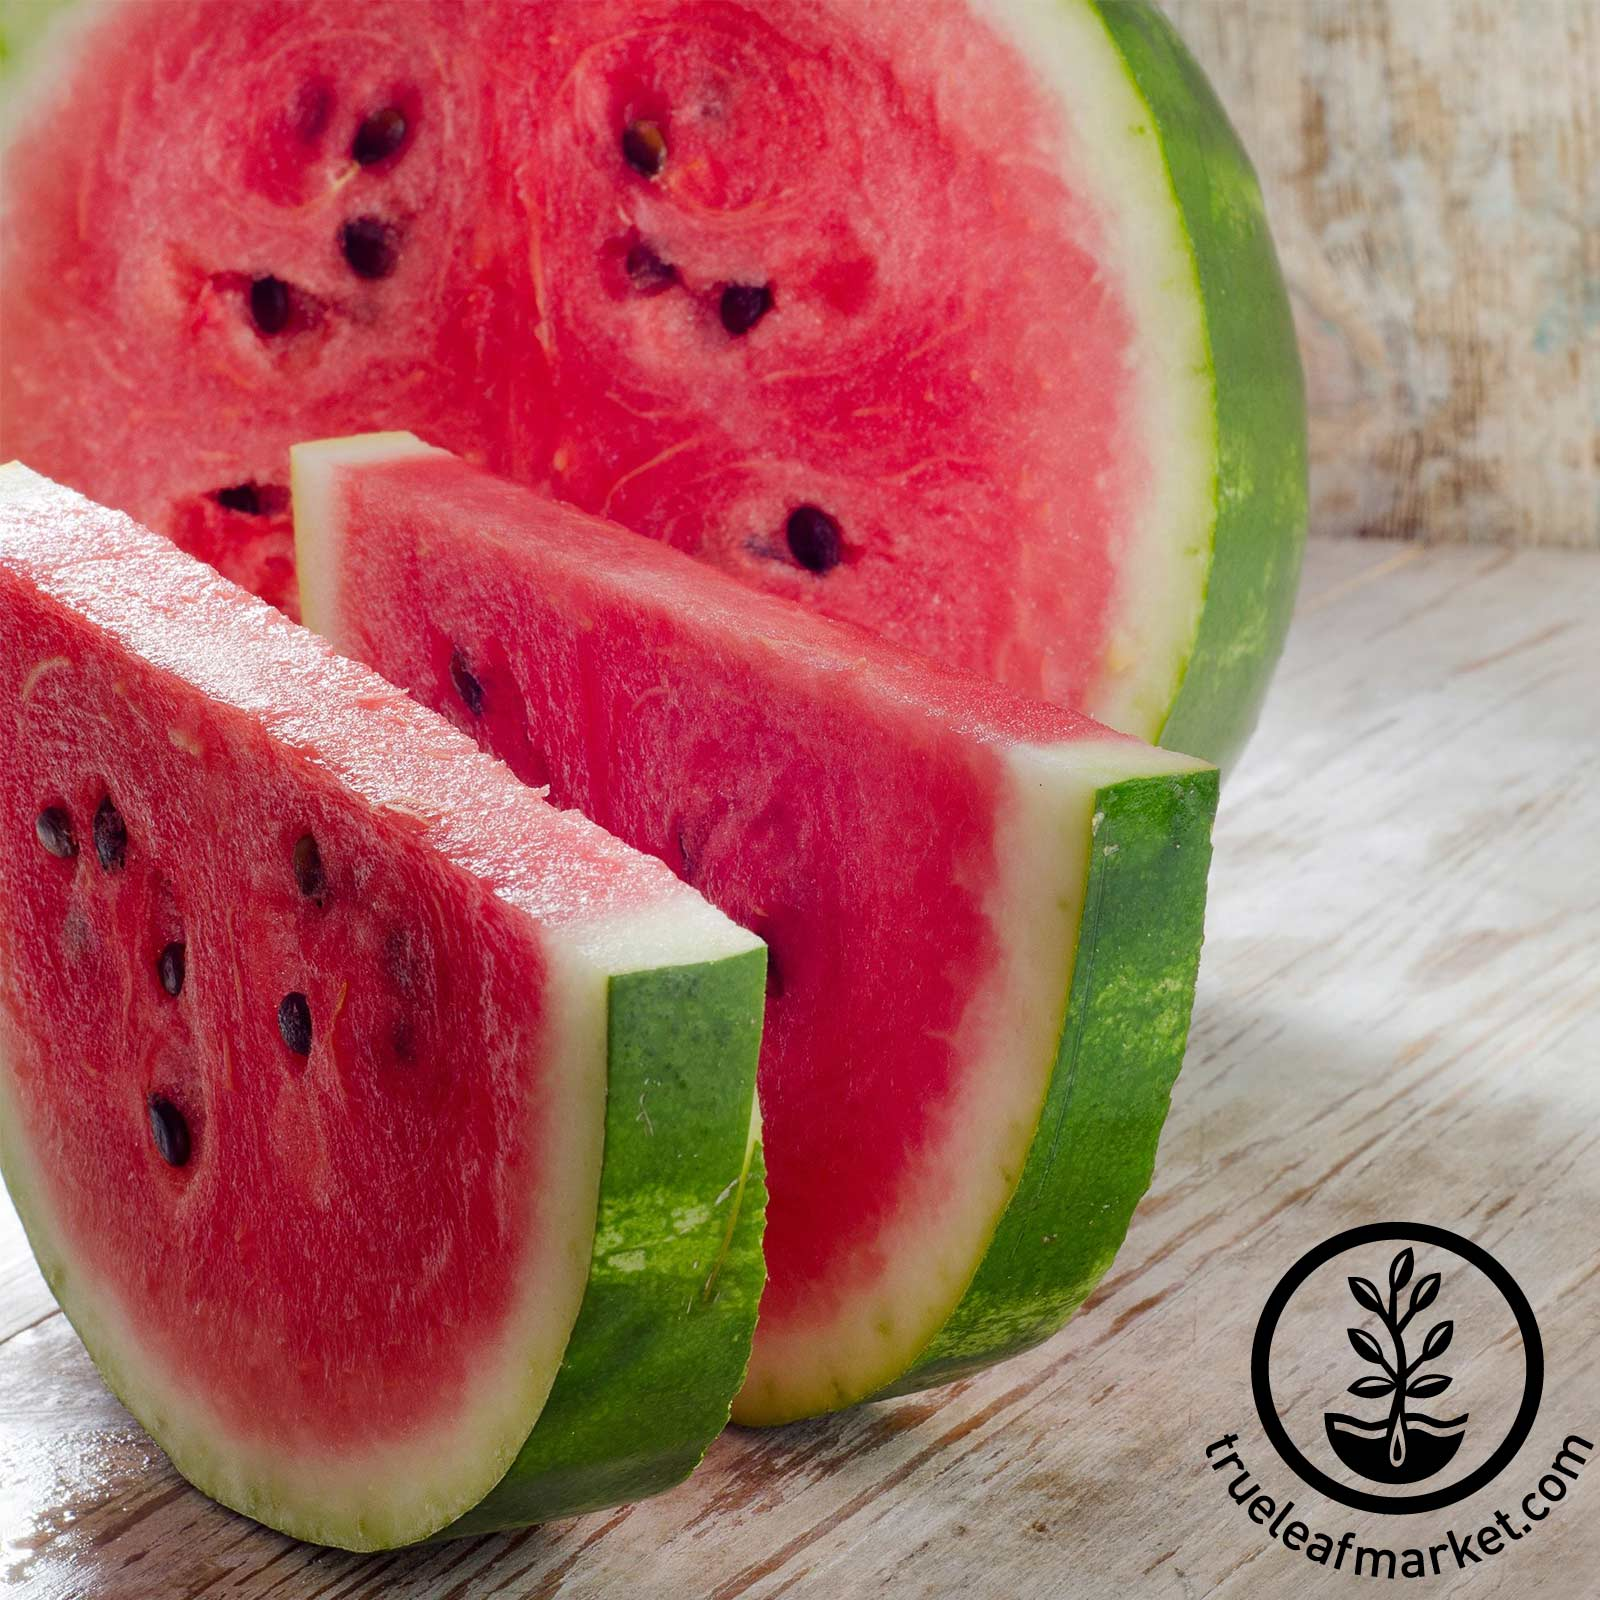 Watermelon - Crimson Sweet Vegetable seeds, fruit seeds, melon seeds, watermelon seeds, Crimson Sweet